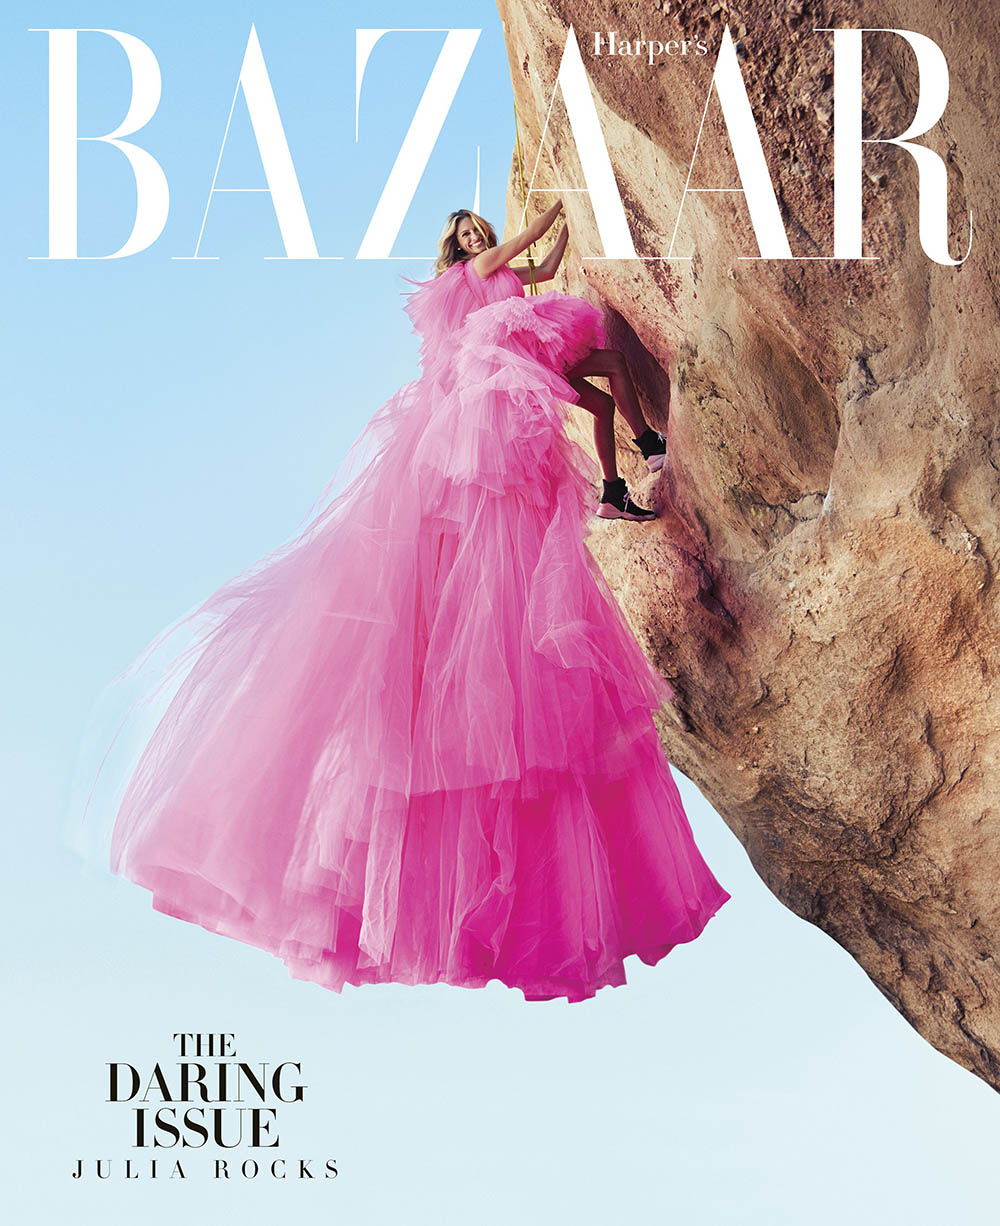 Julia Roberts covers Harper's Bazaar US November 2018 by Alexi Lubomirski